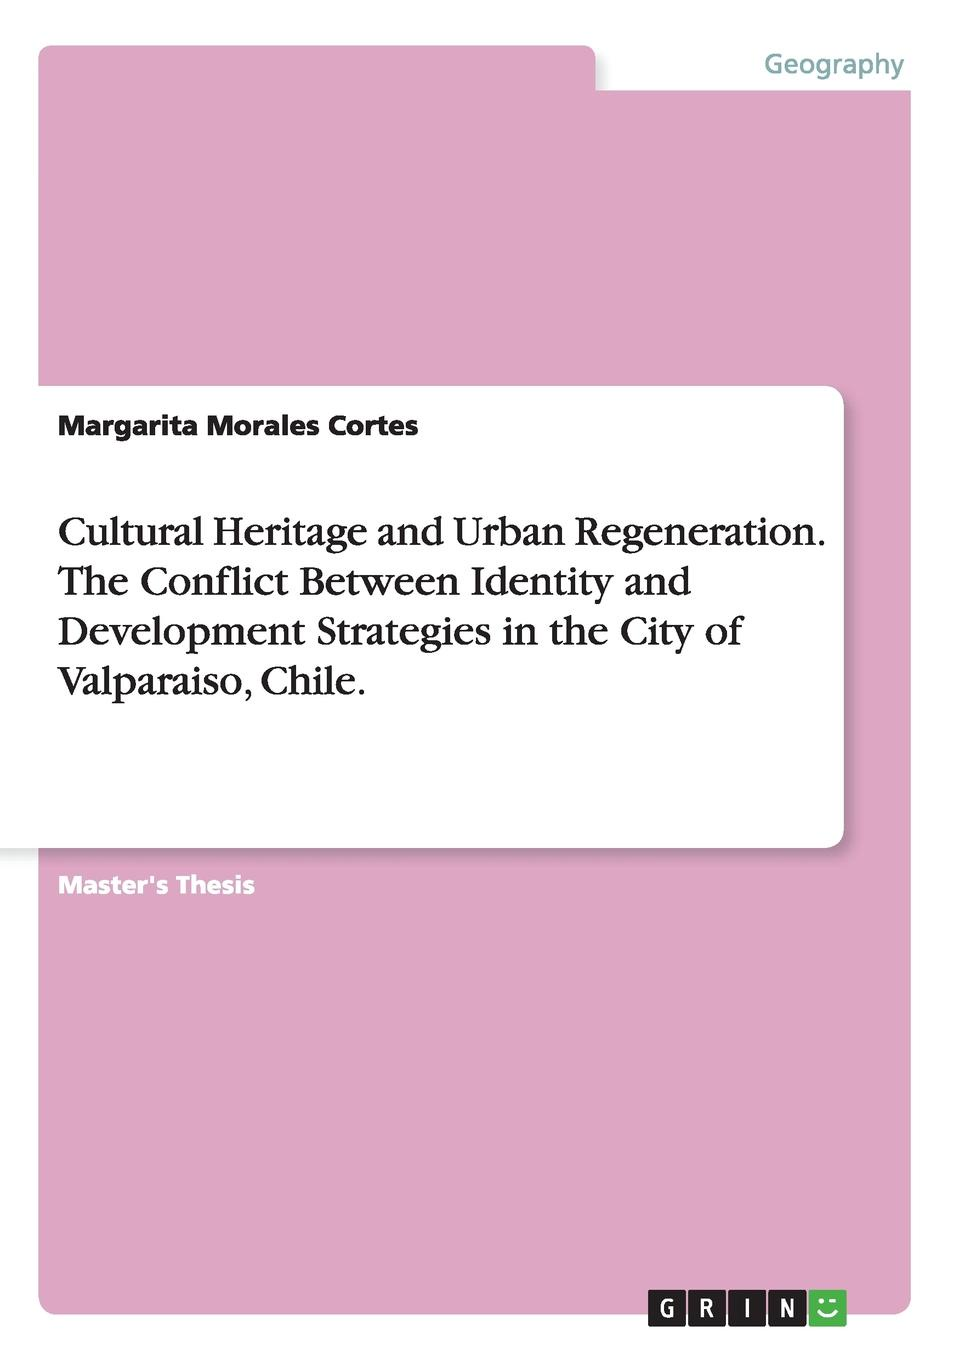 Margarita Morales Cortes Cultural Heritage and Urban Regeneration. The Conflict Between Identity and Development Strategies in the City of Valparaiso, Chile. ribambelle in the city